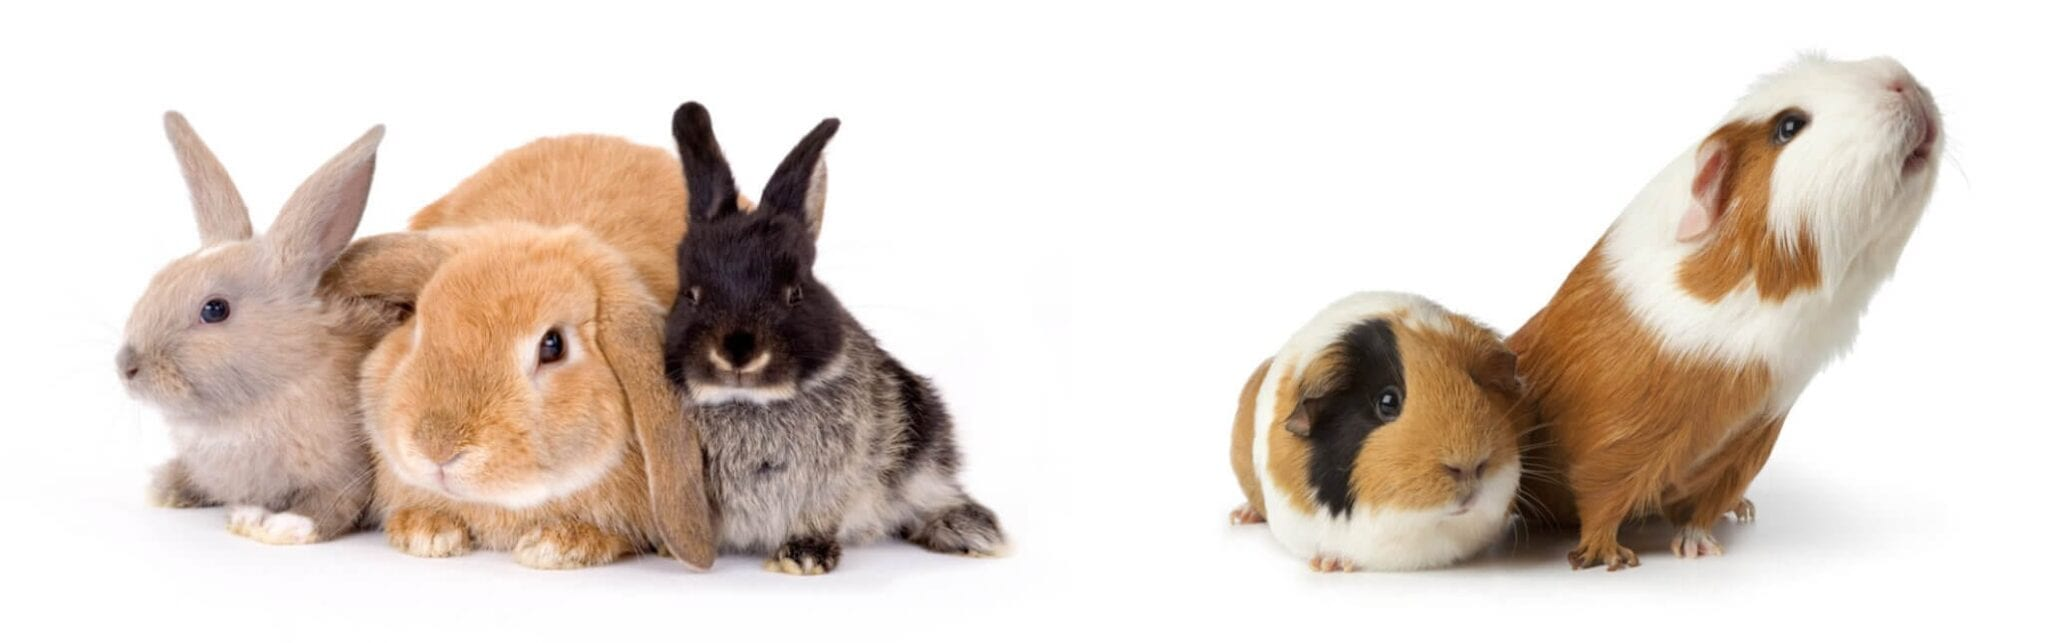 Rabbits and guinea pigs on the Lapin Luxury online pet store homepage